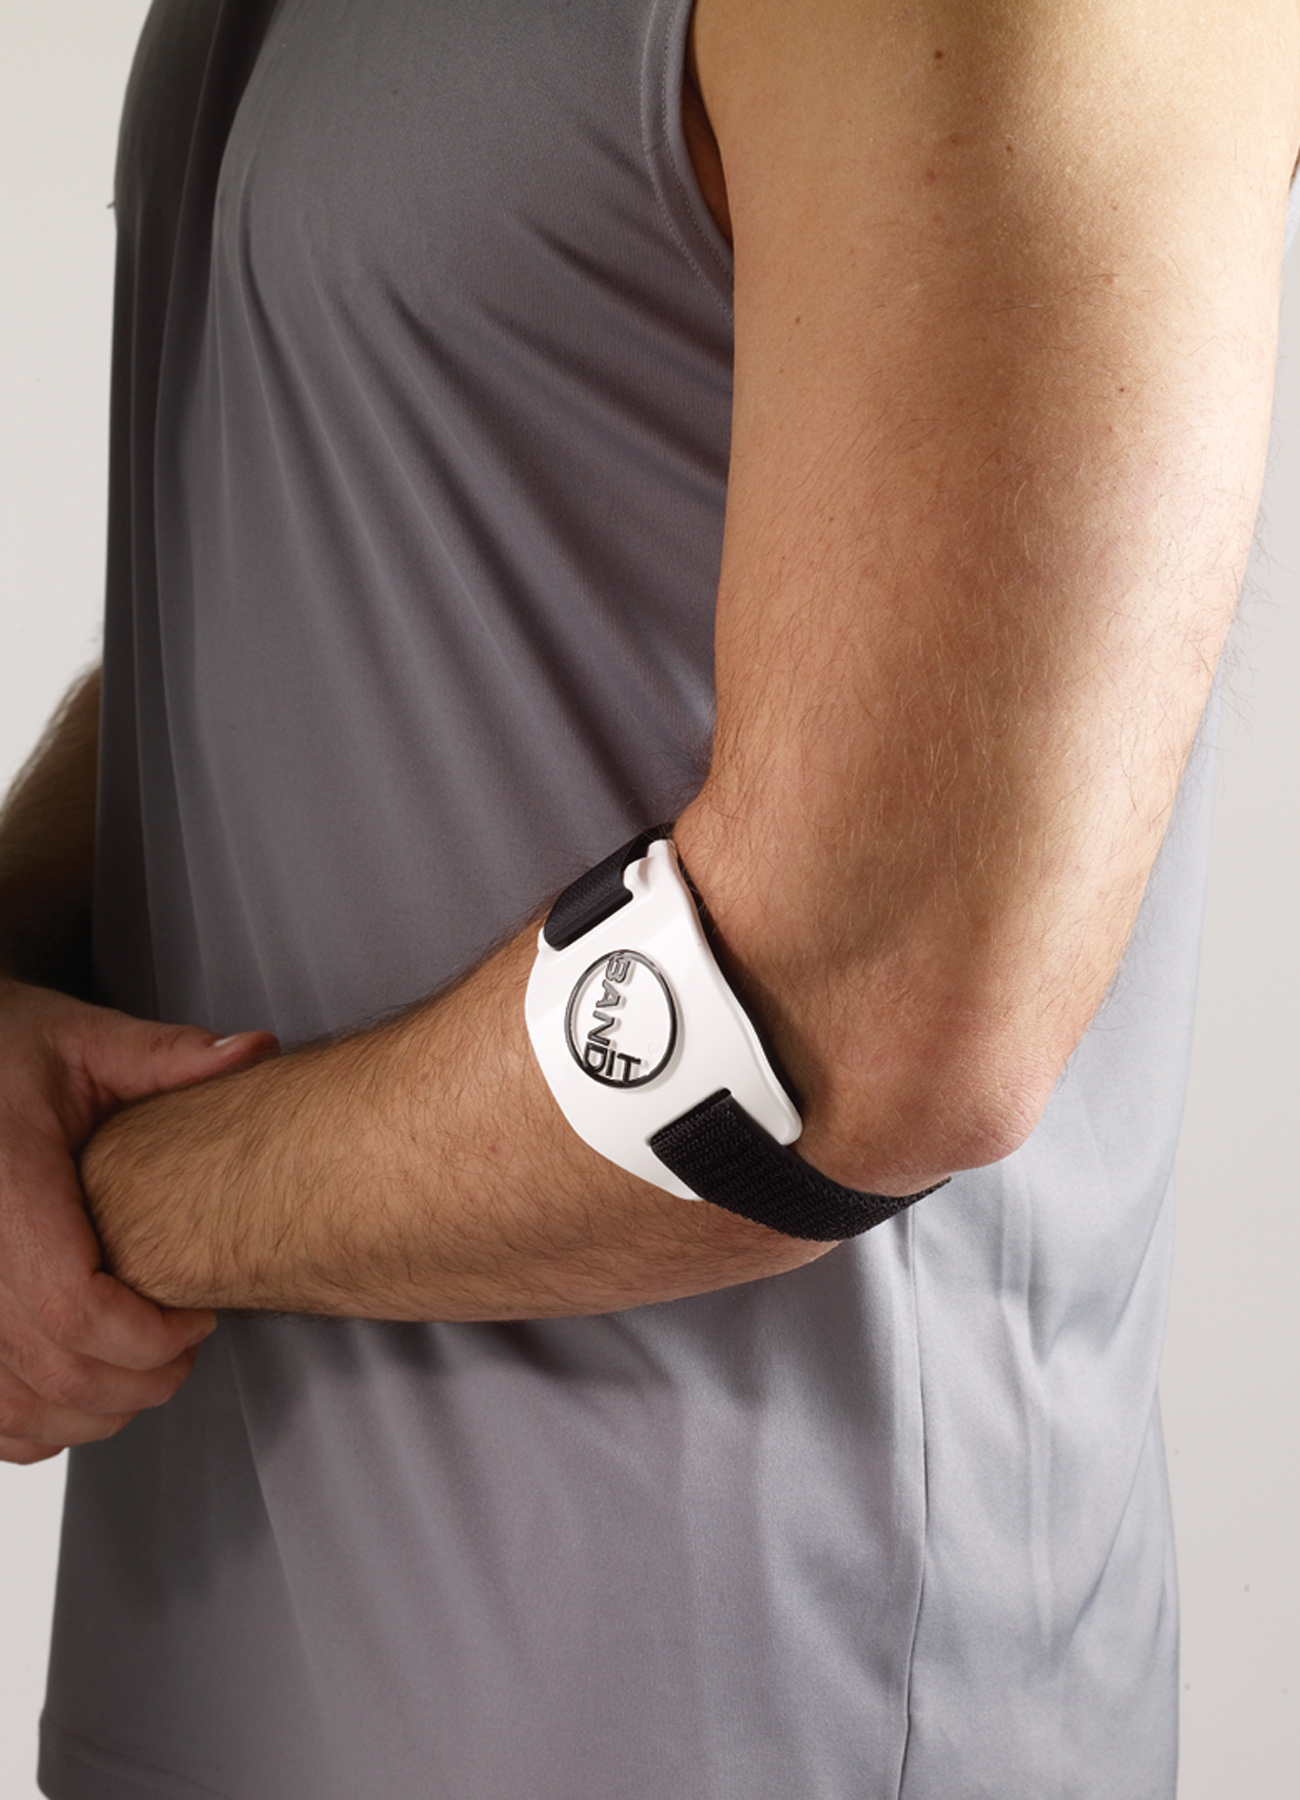 Band It Elbow Strap